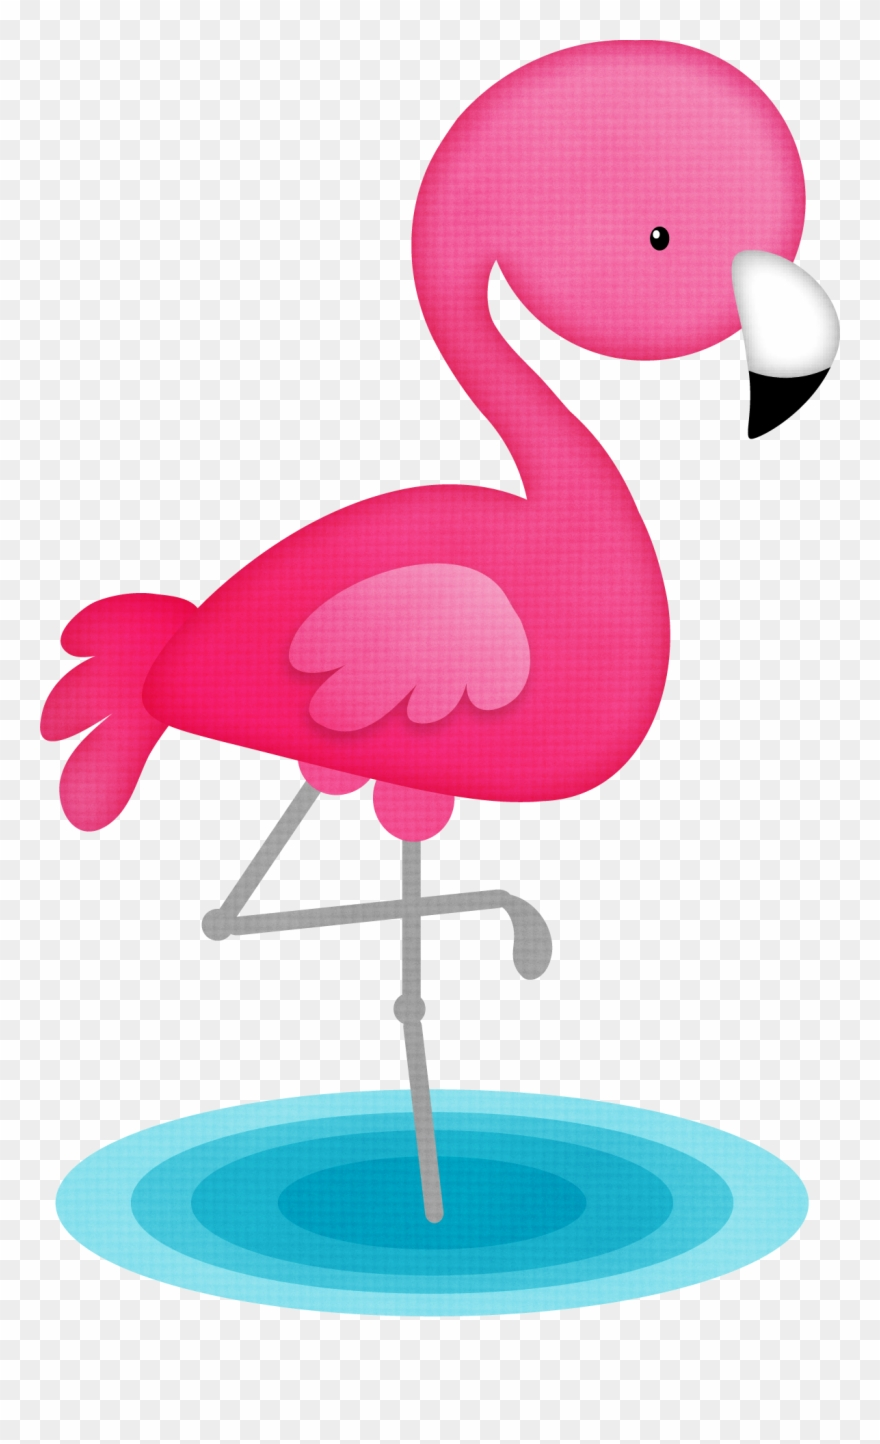 medium resolution of  flamingo cute clipart png download